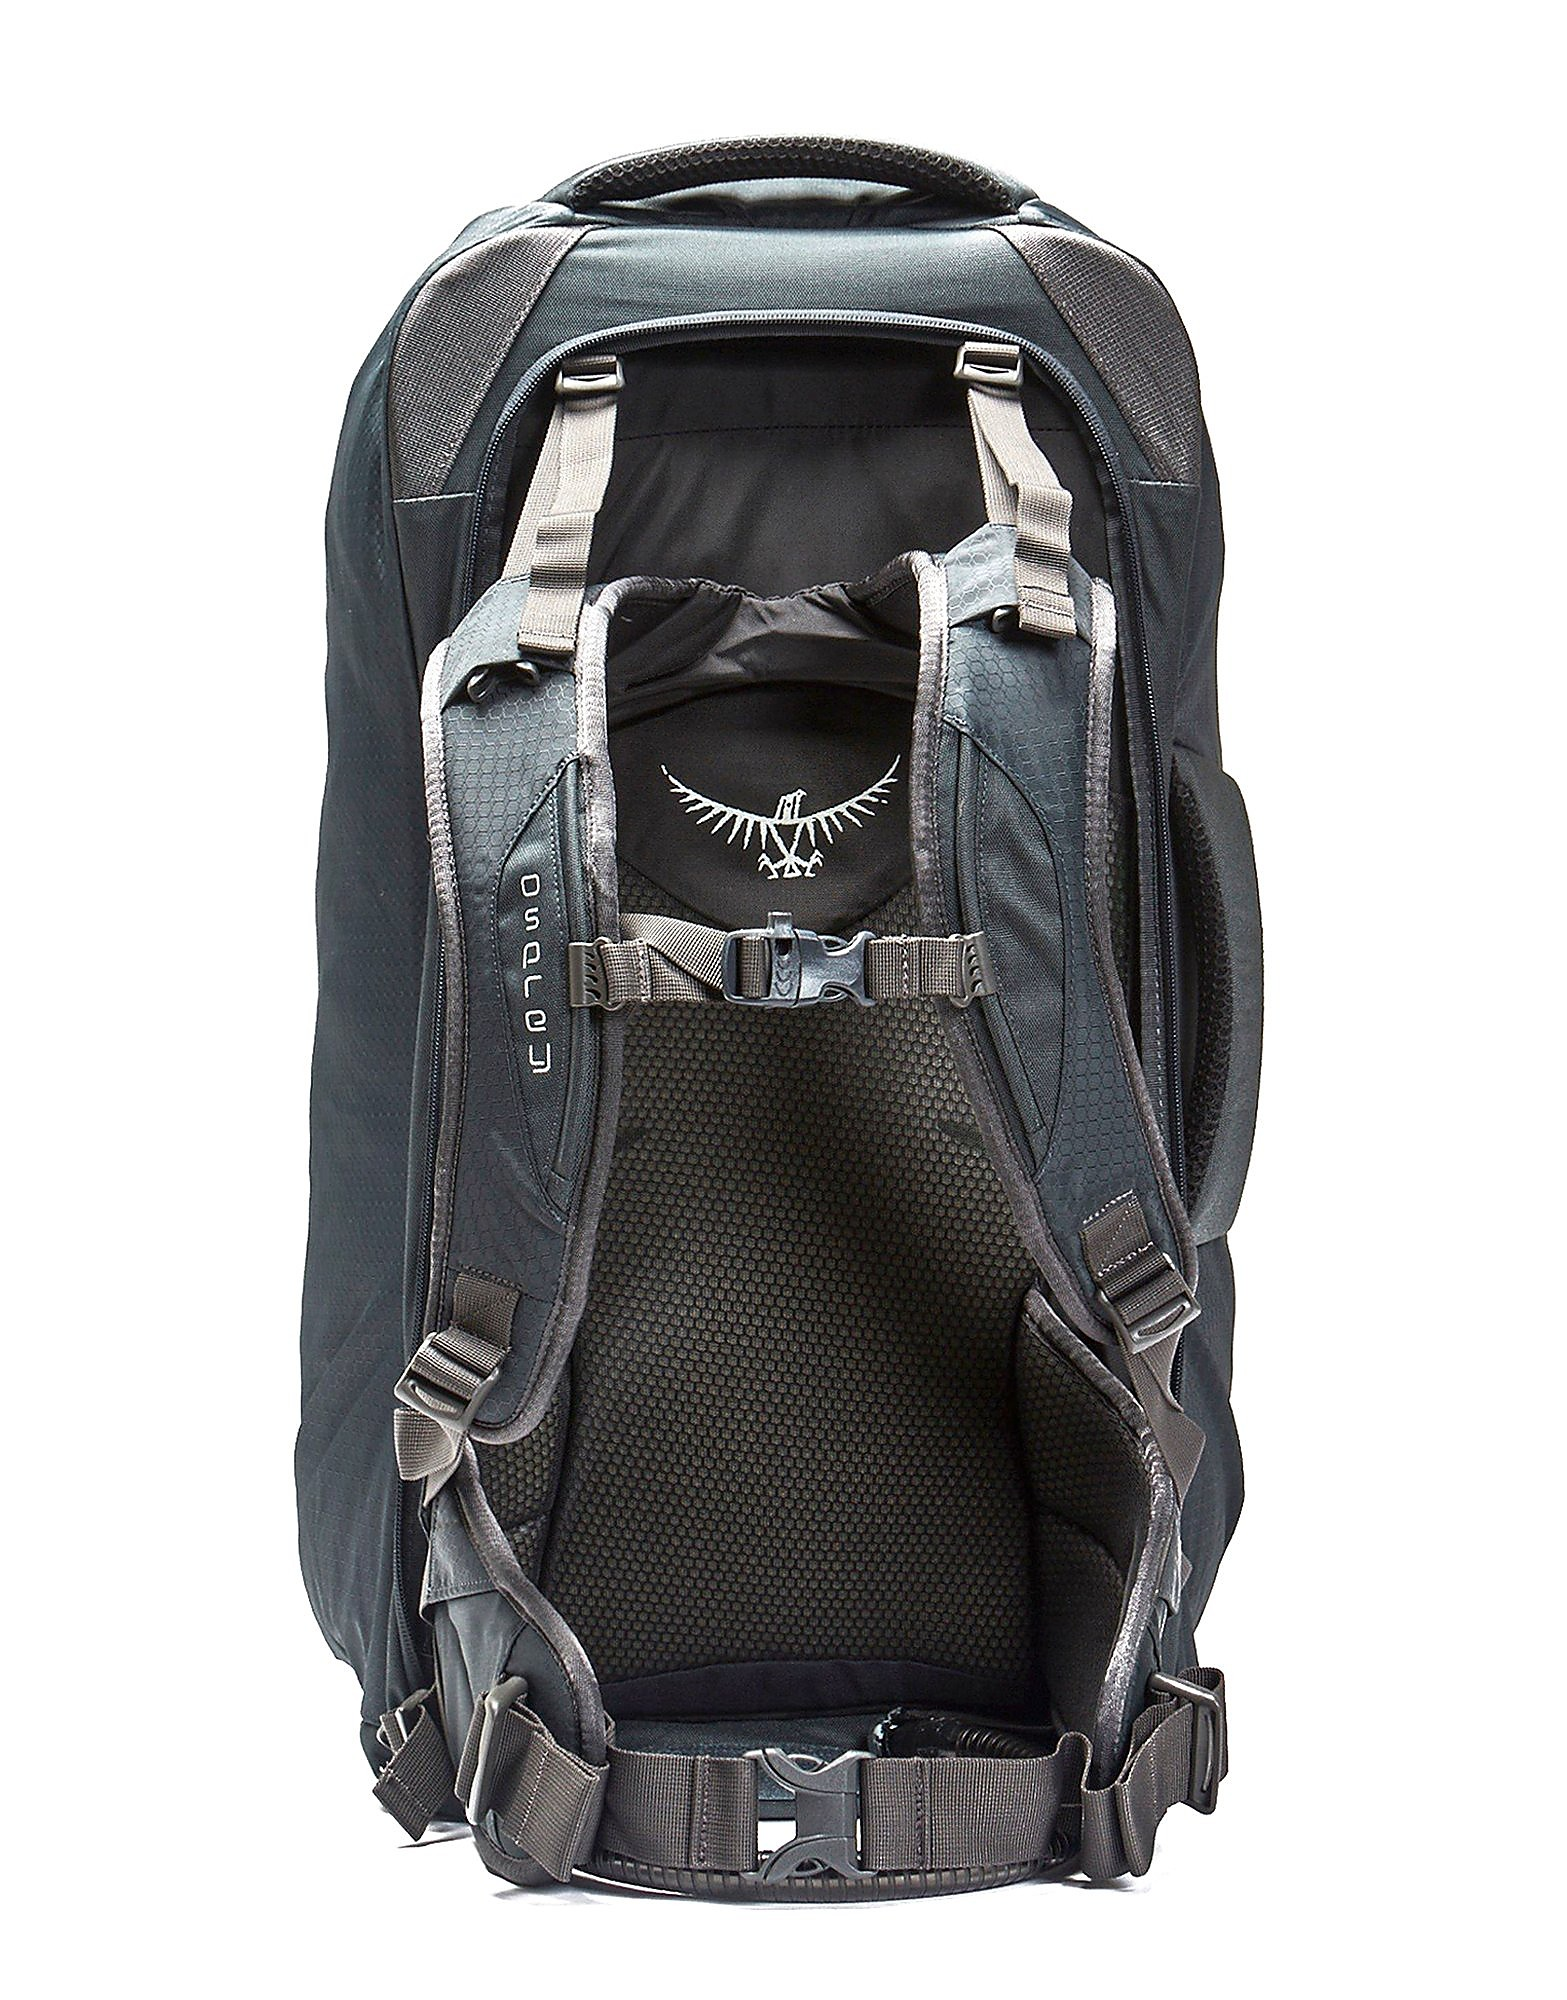 Osprey Farpoint 70 Backpack